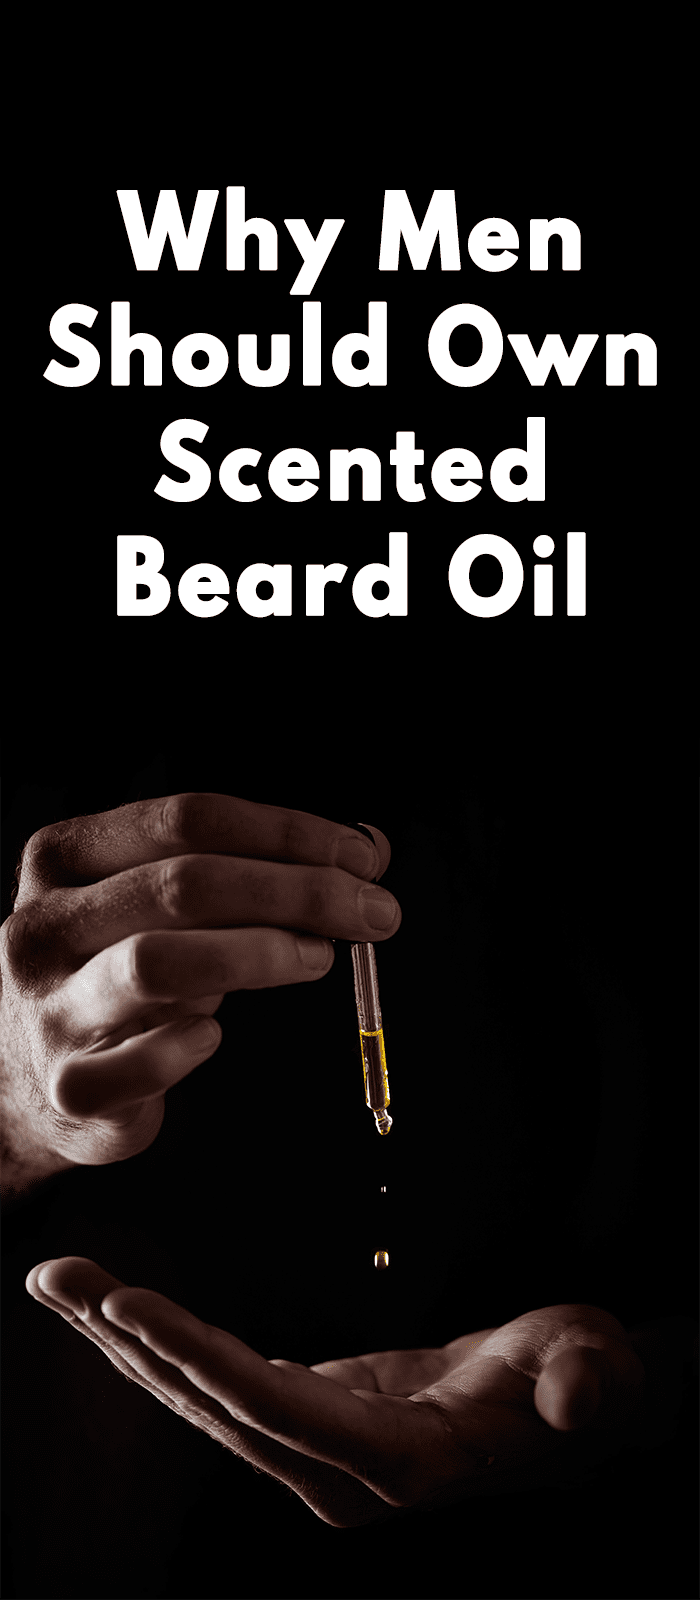 Why Men Should Own Scented Beard Oil!